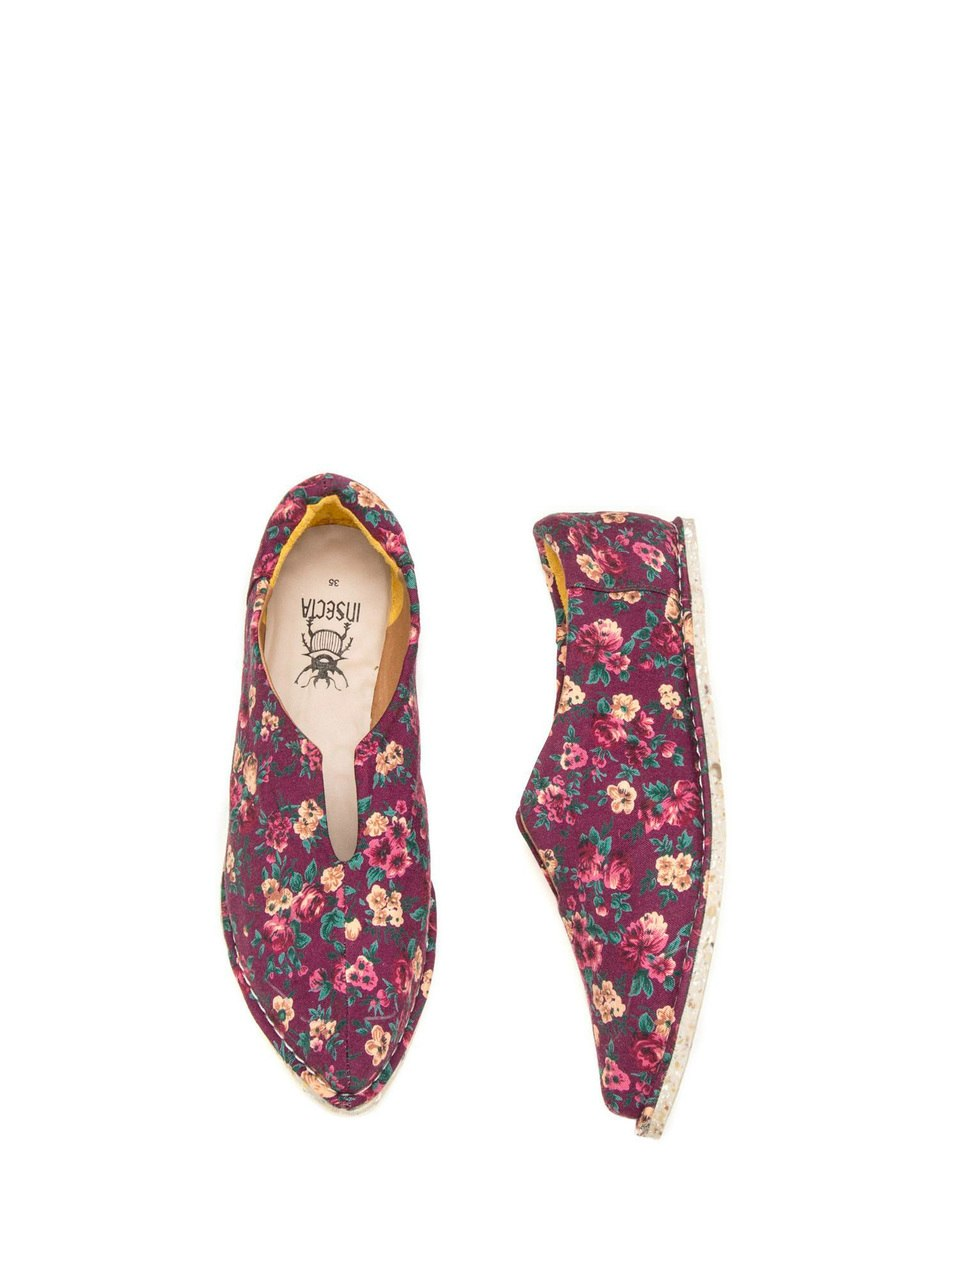 Insecta Shoes Insecta Helena Slipper Shoe | Stellis | Vegan Scene